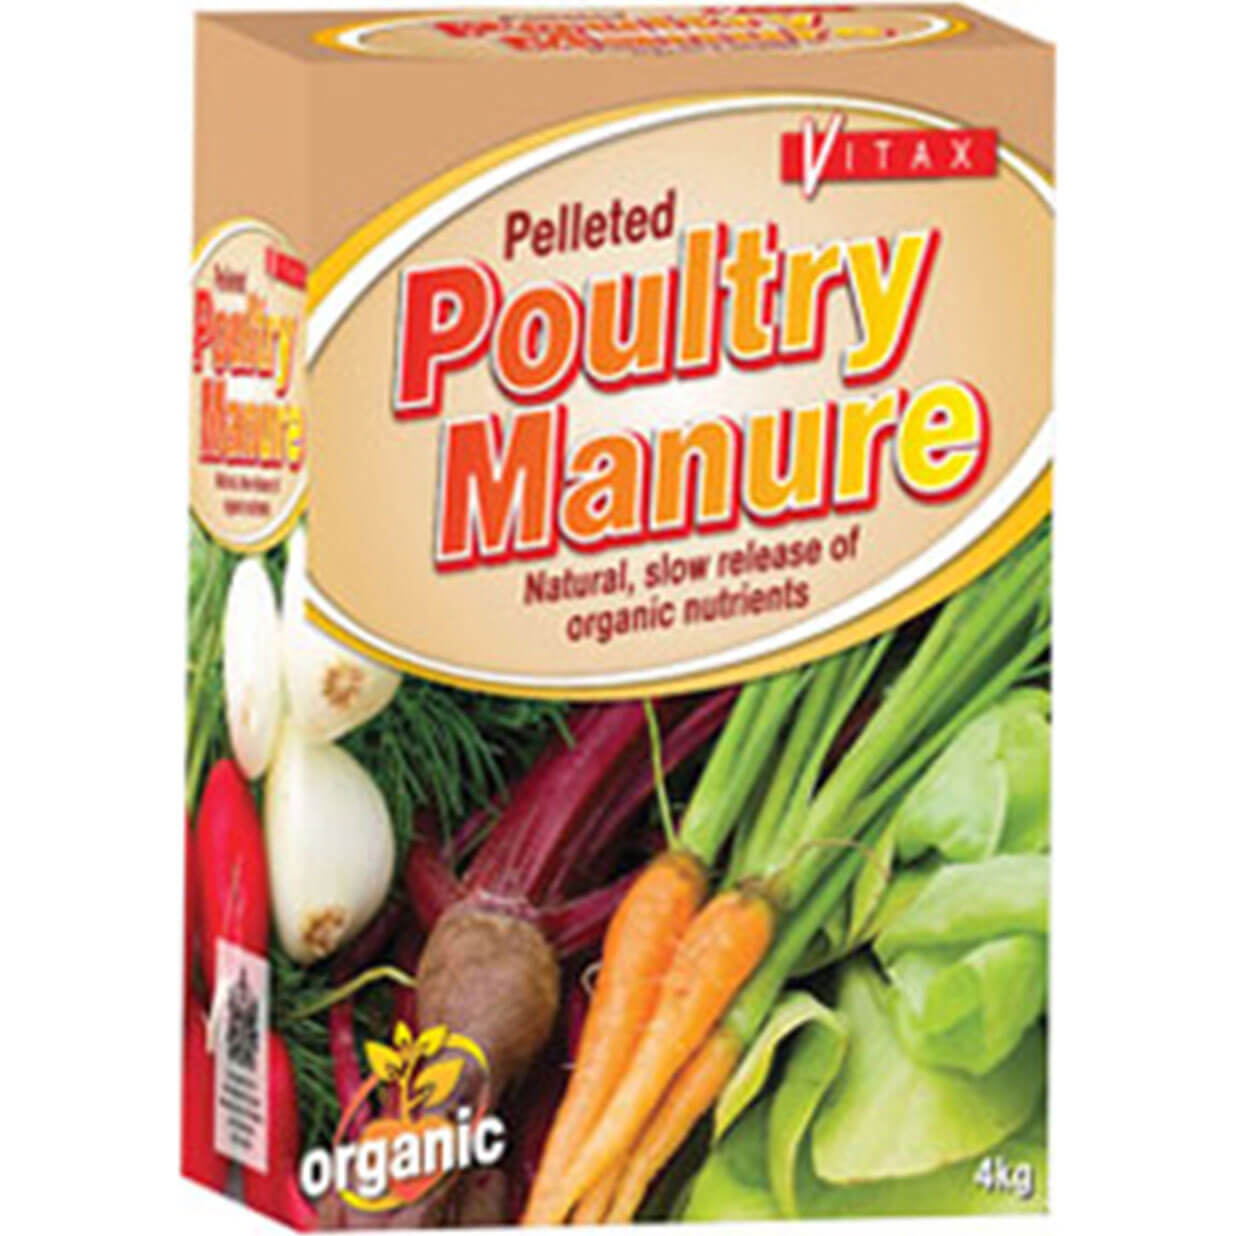 Vitax Pelleted Poultry Manure 4kg Box